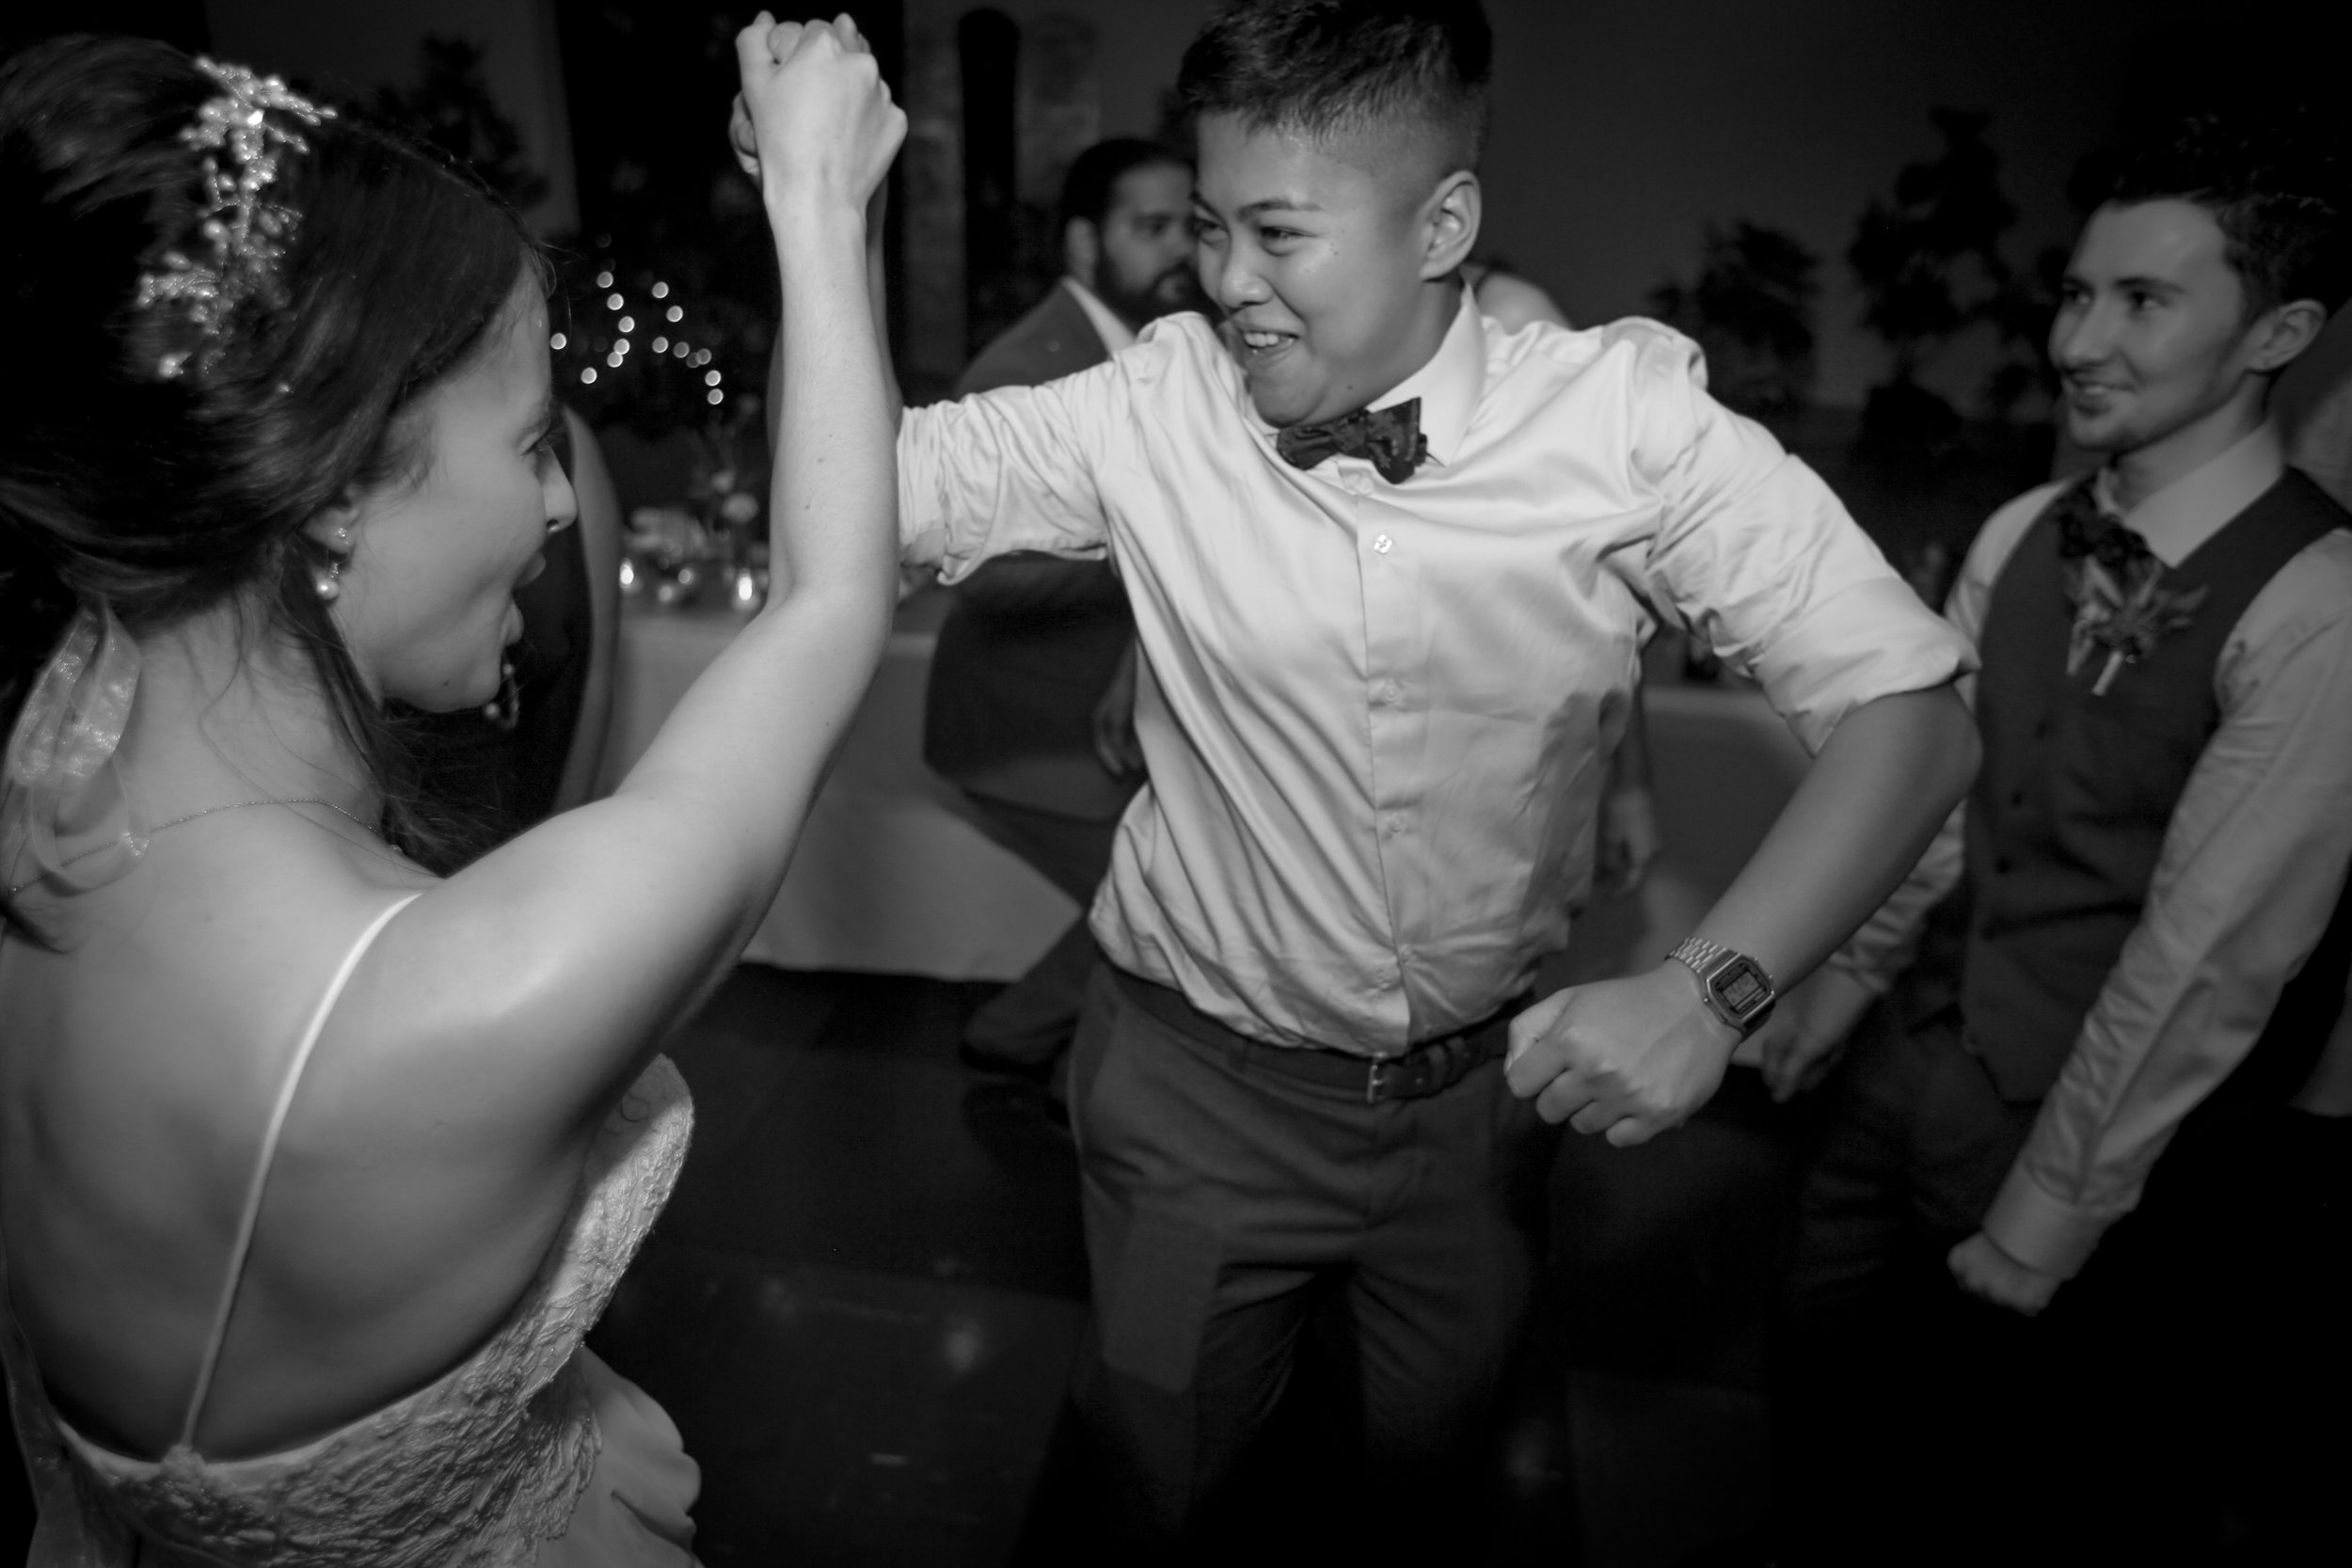 Emily&AaronWedding (557 of 572).jpg